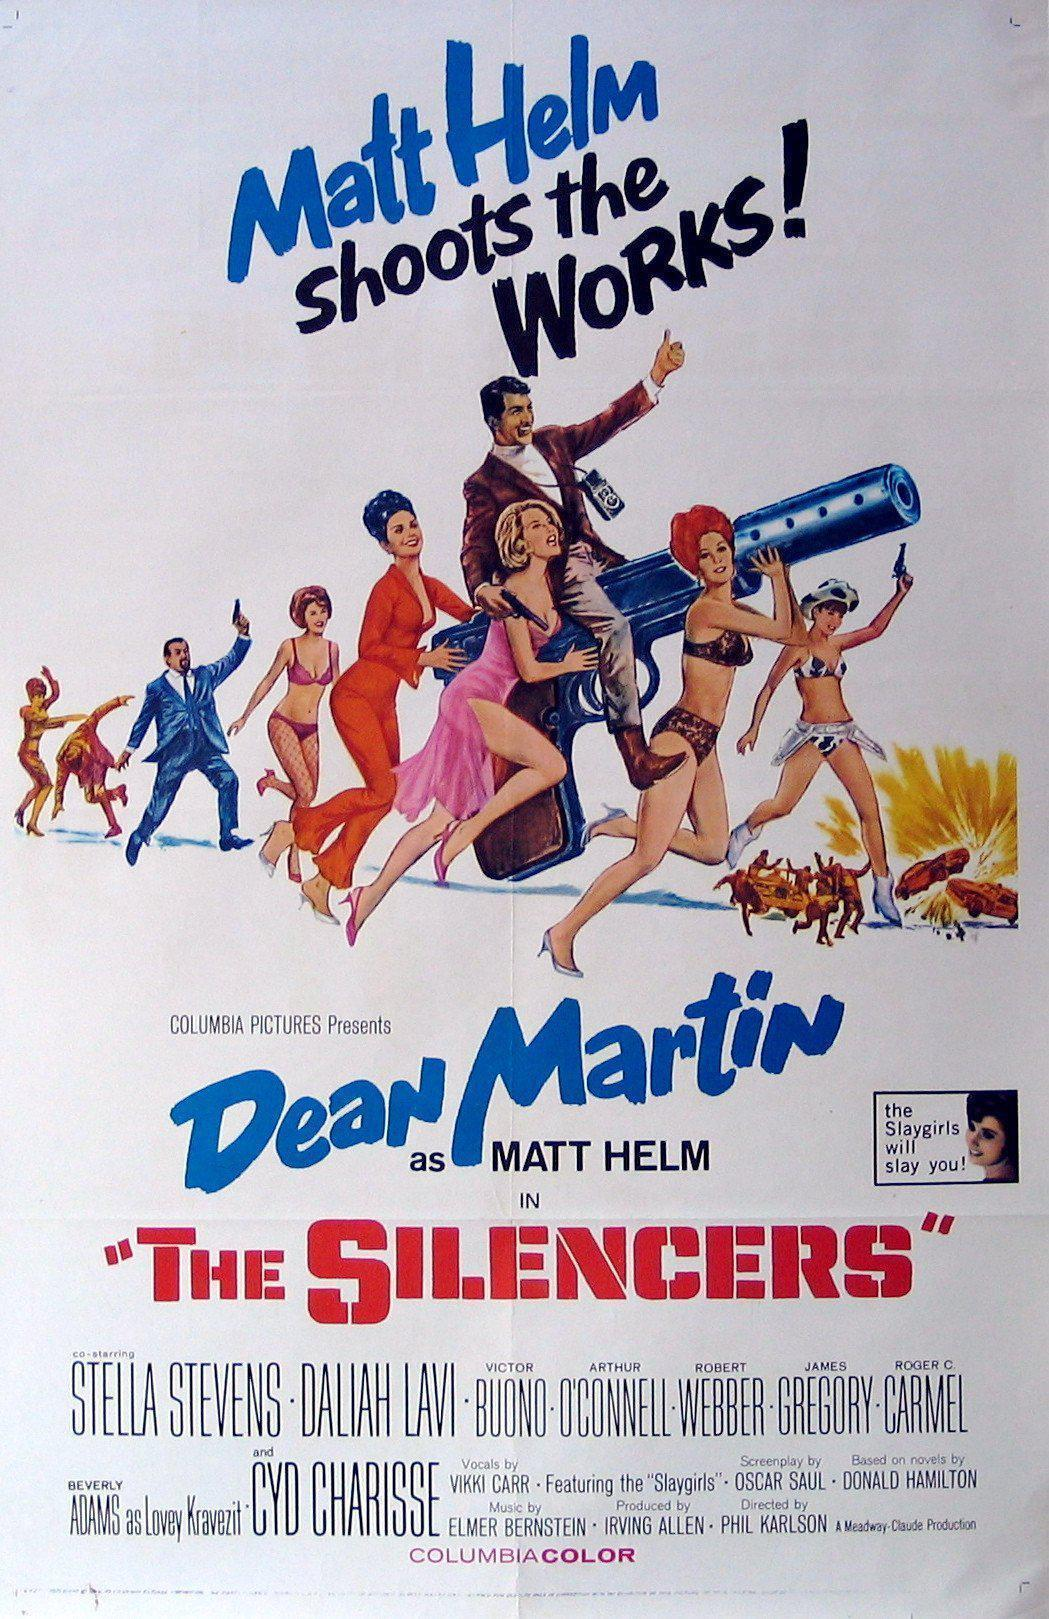 The Silencers 1 Sheet (27x41) Original Vintage Movie Poster